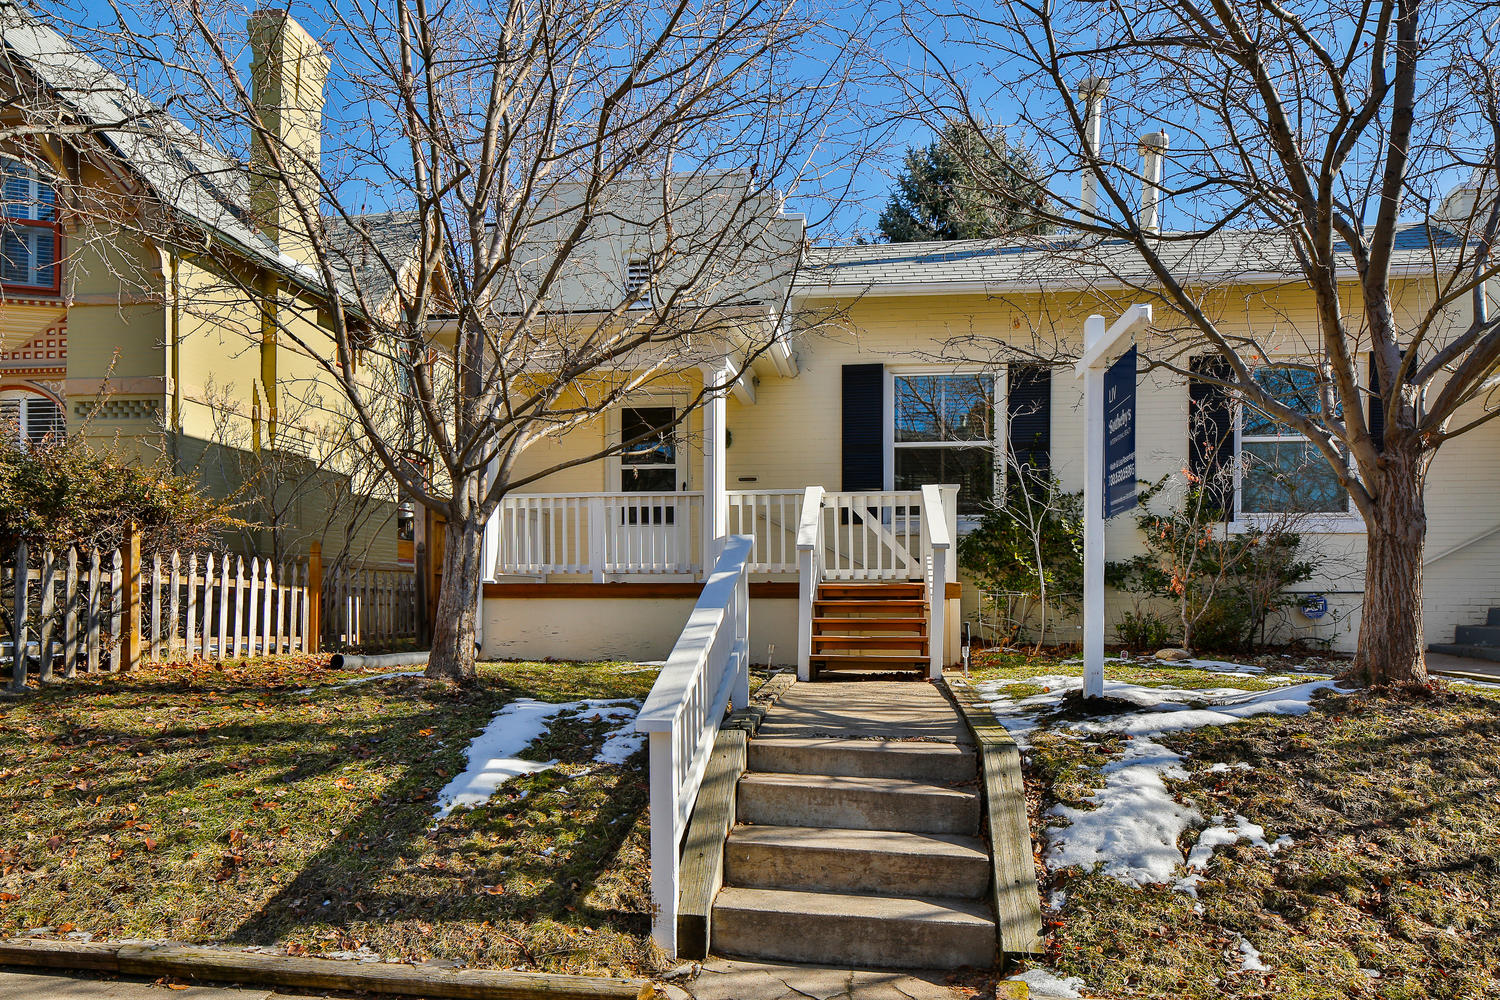 Single Family Home for Sale at Charming Home in the Heart of Country Club! 552 North Marion Street Country Club, Denver, Colorado 80218 United States